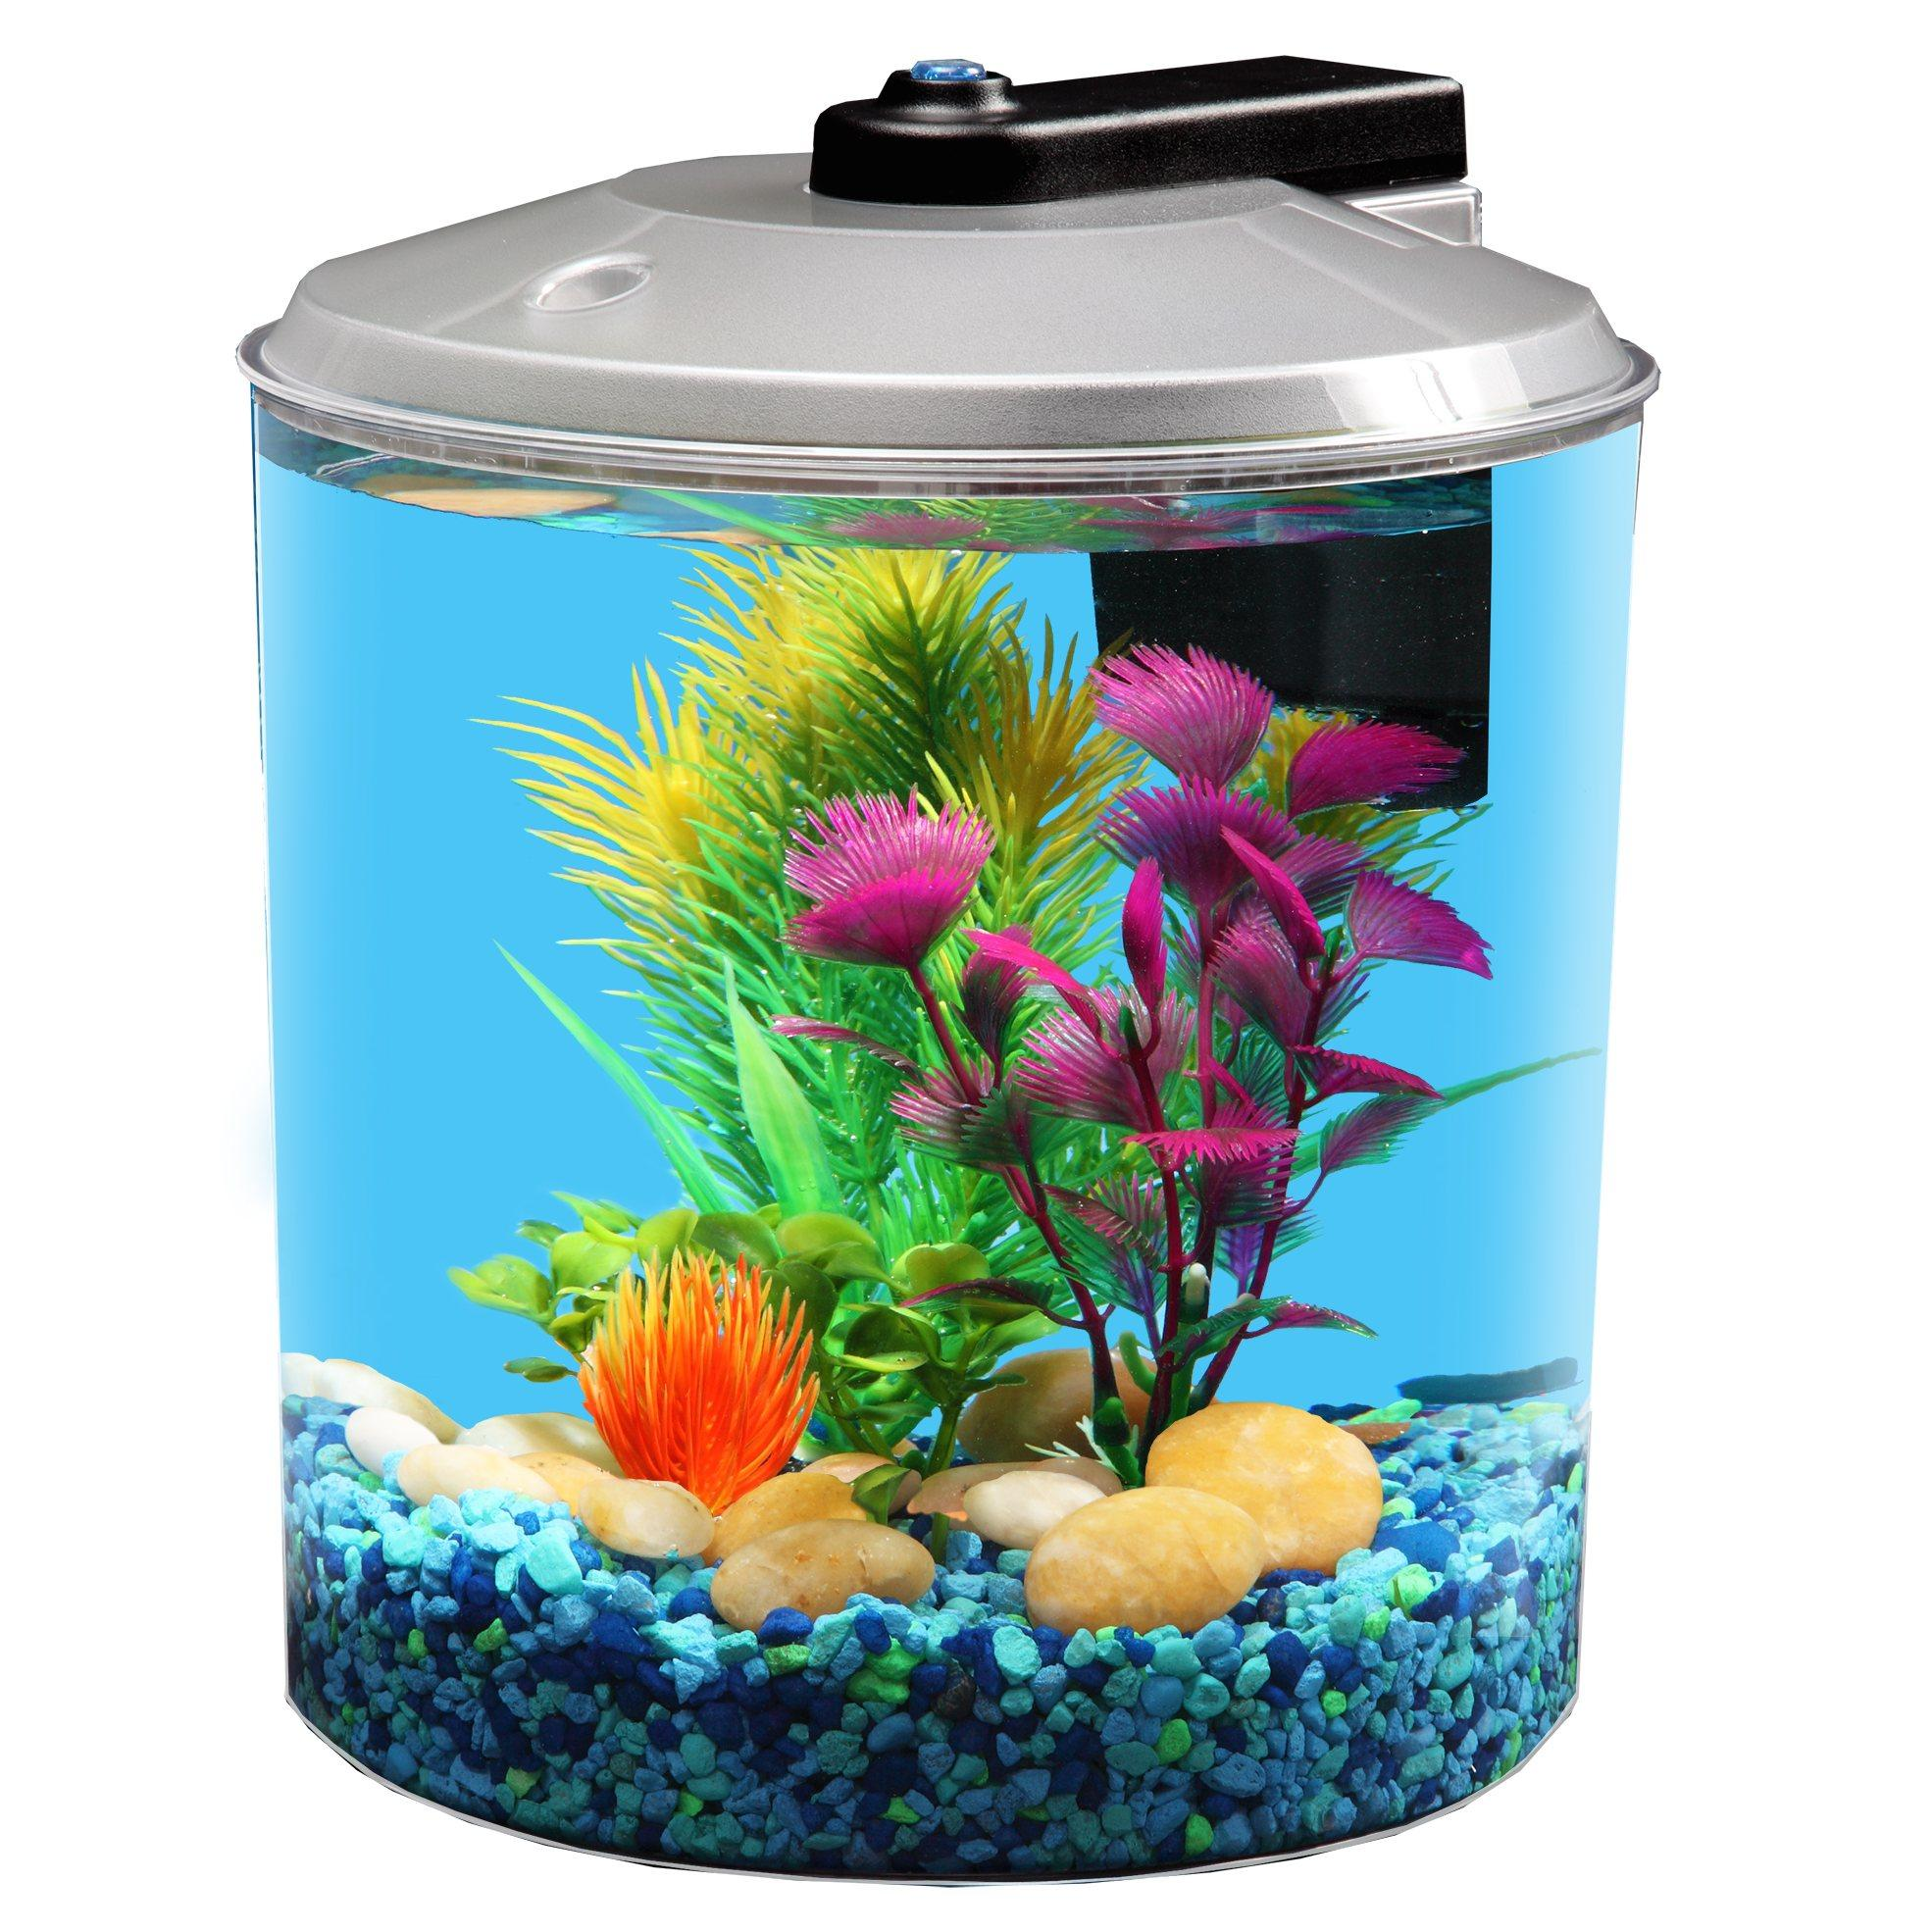 Api betta kit 360 degree fish tank 1 5 for Betta fish tanks amazon